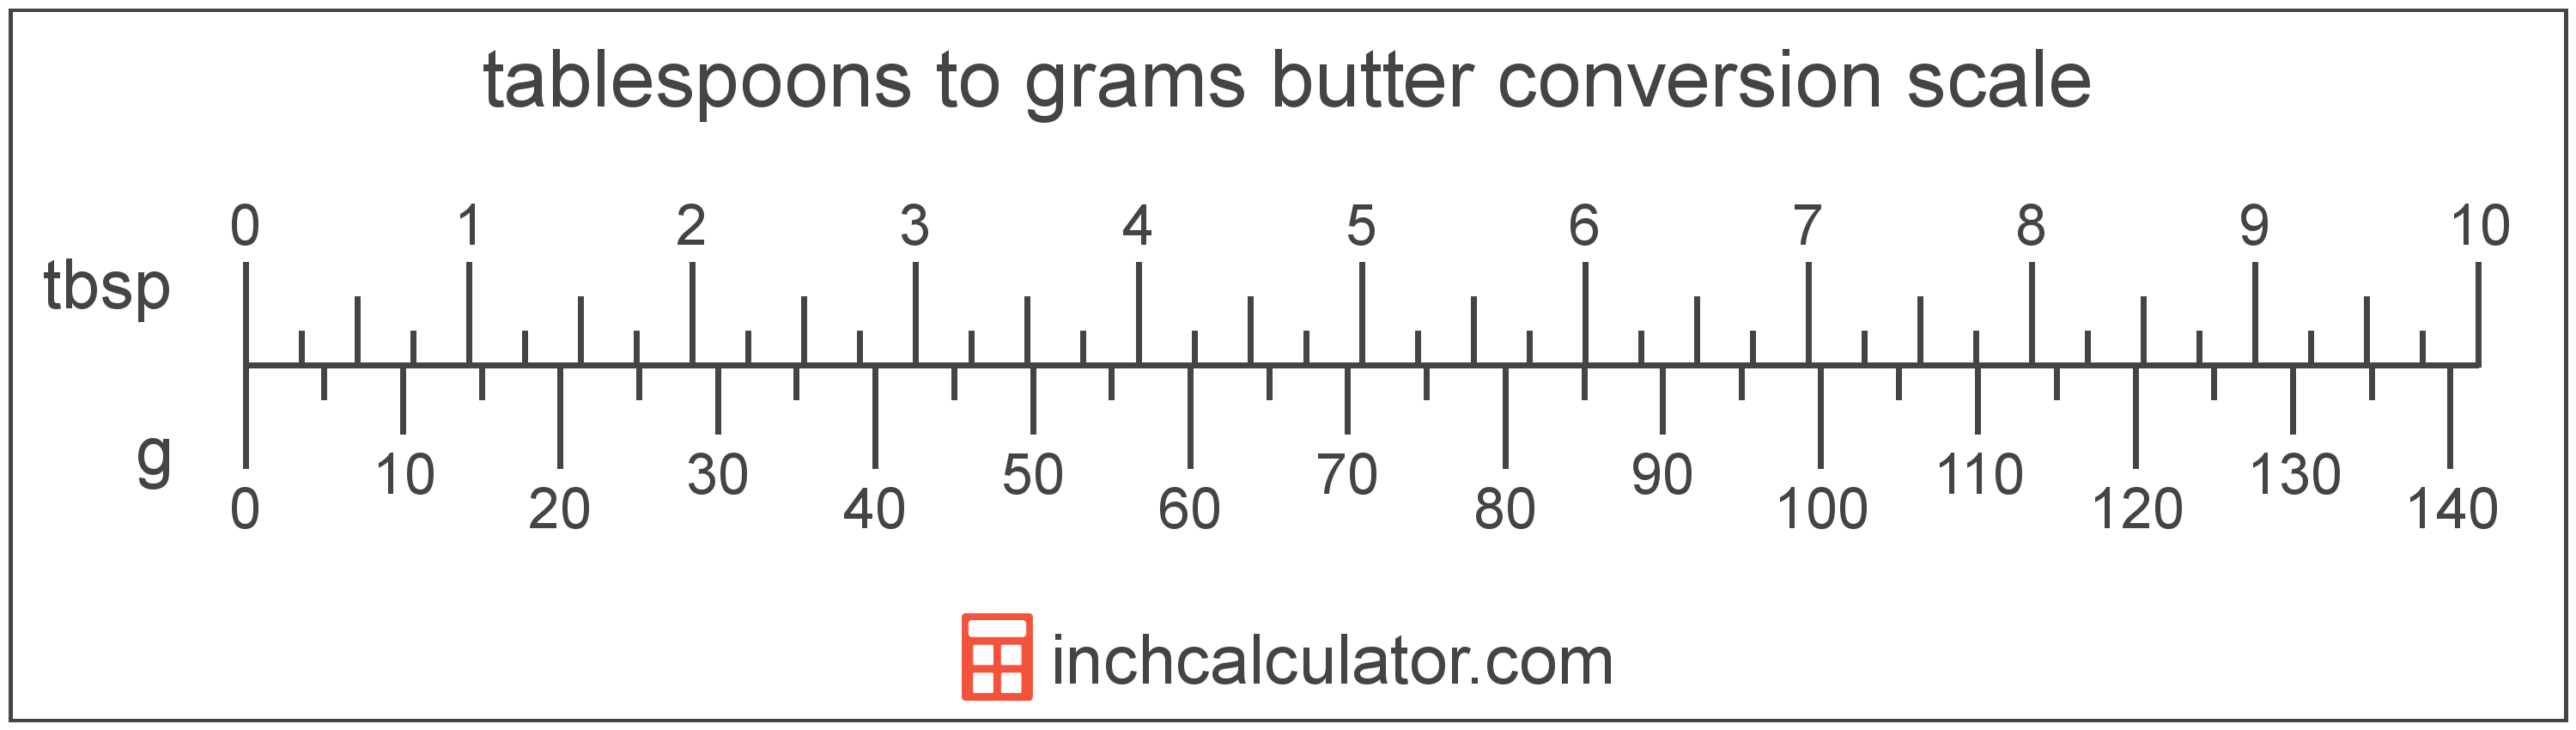 Tablespoons Of Butter To Grams Conversion Tbsp To G